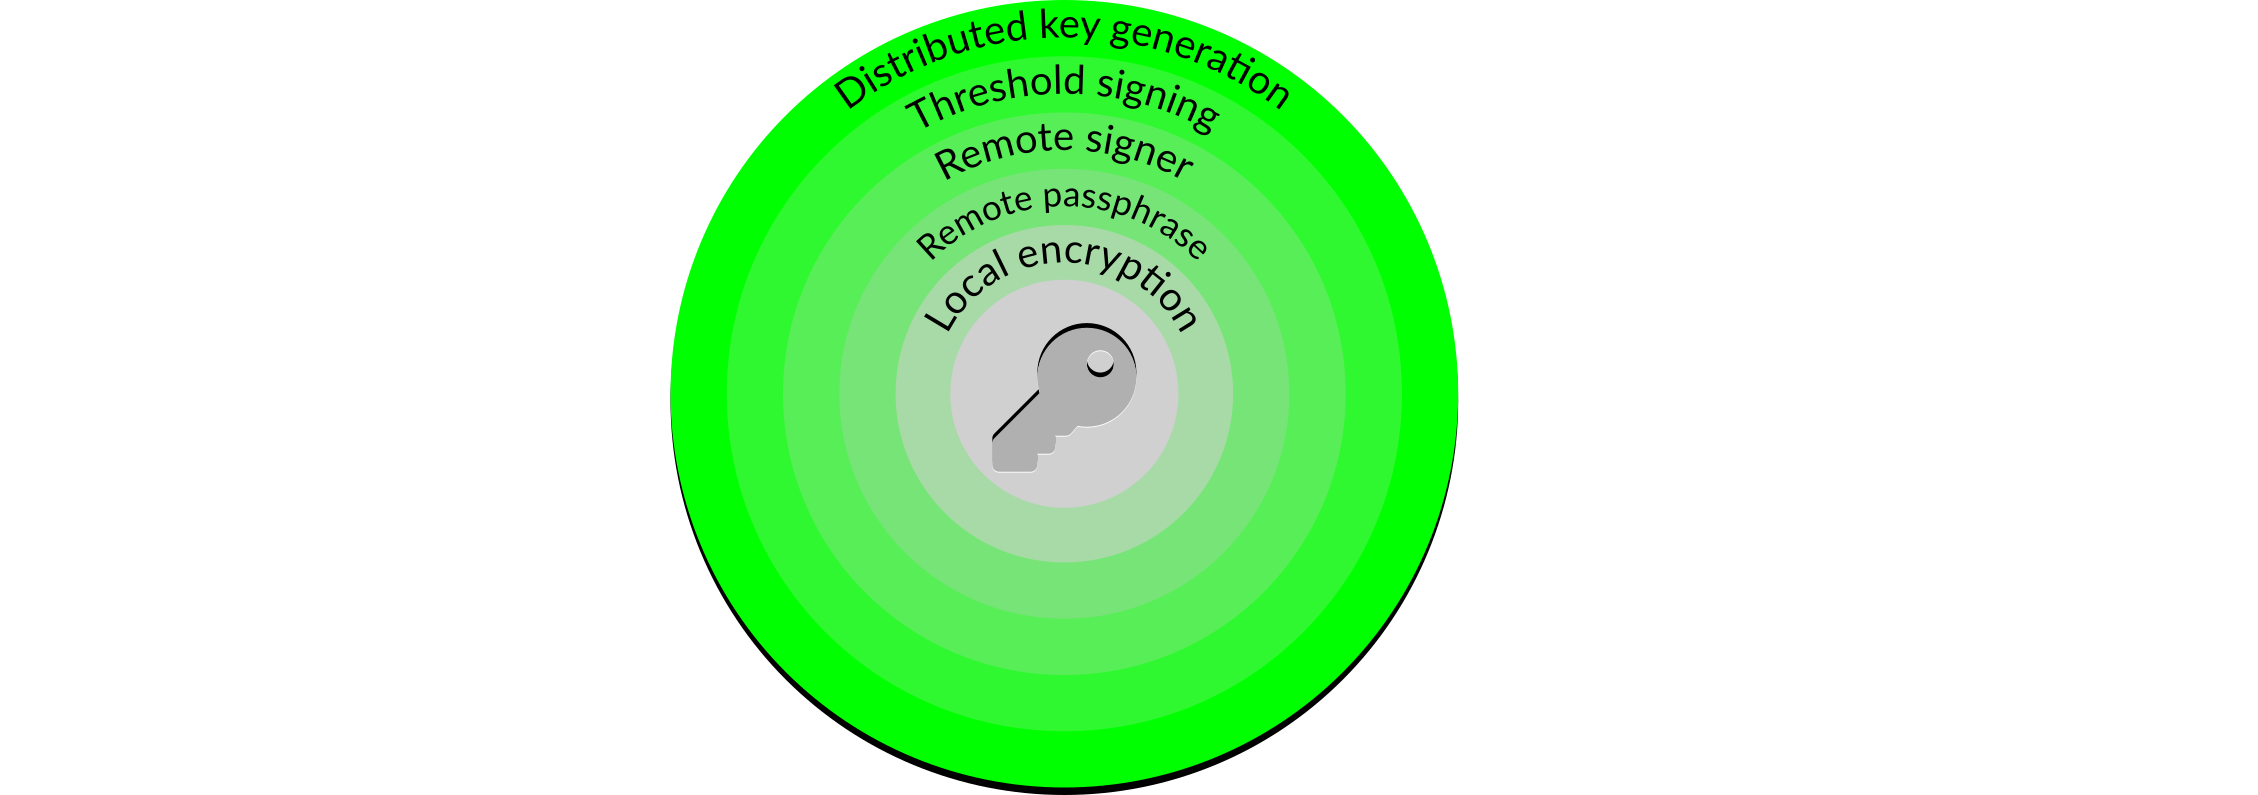 Distributed key generation